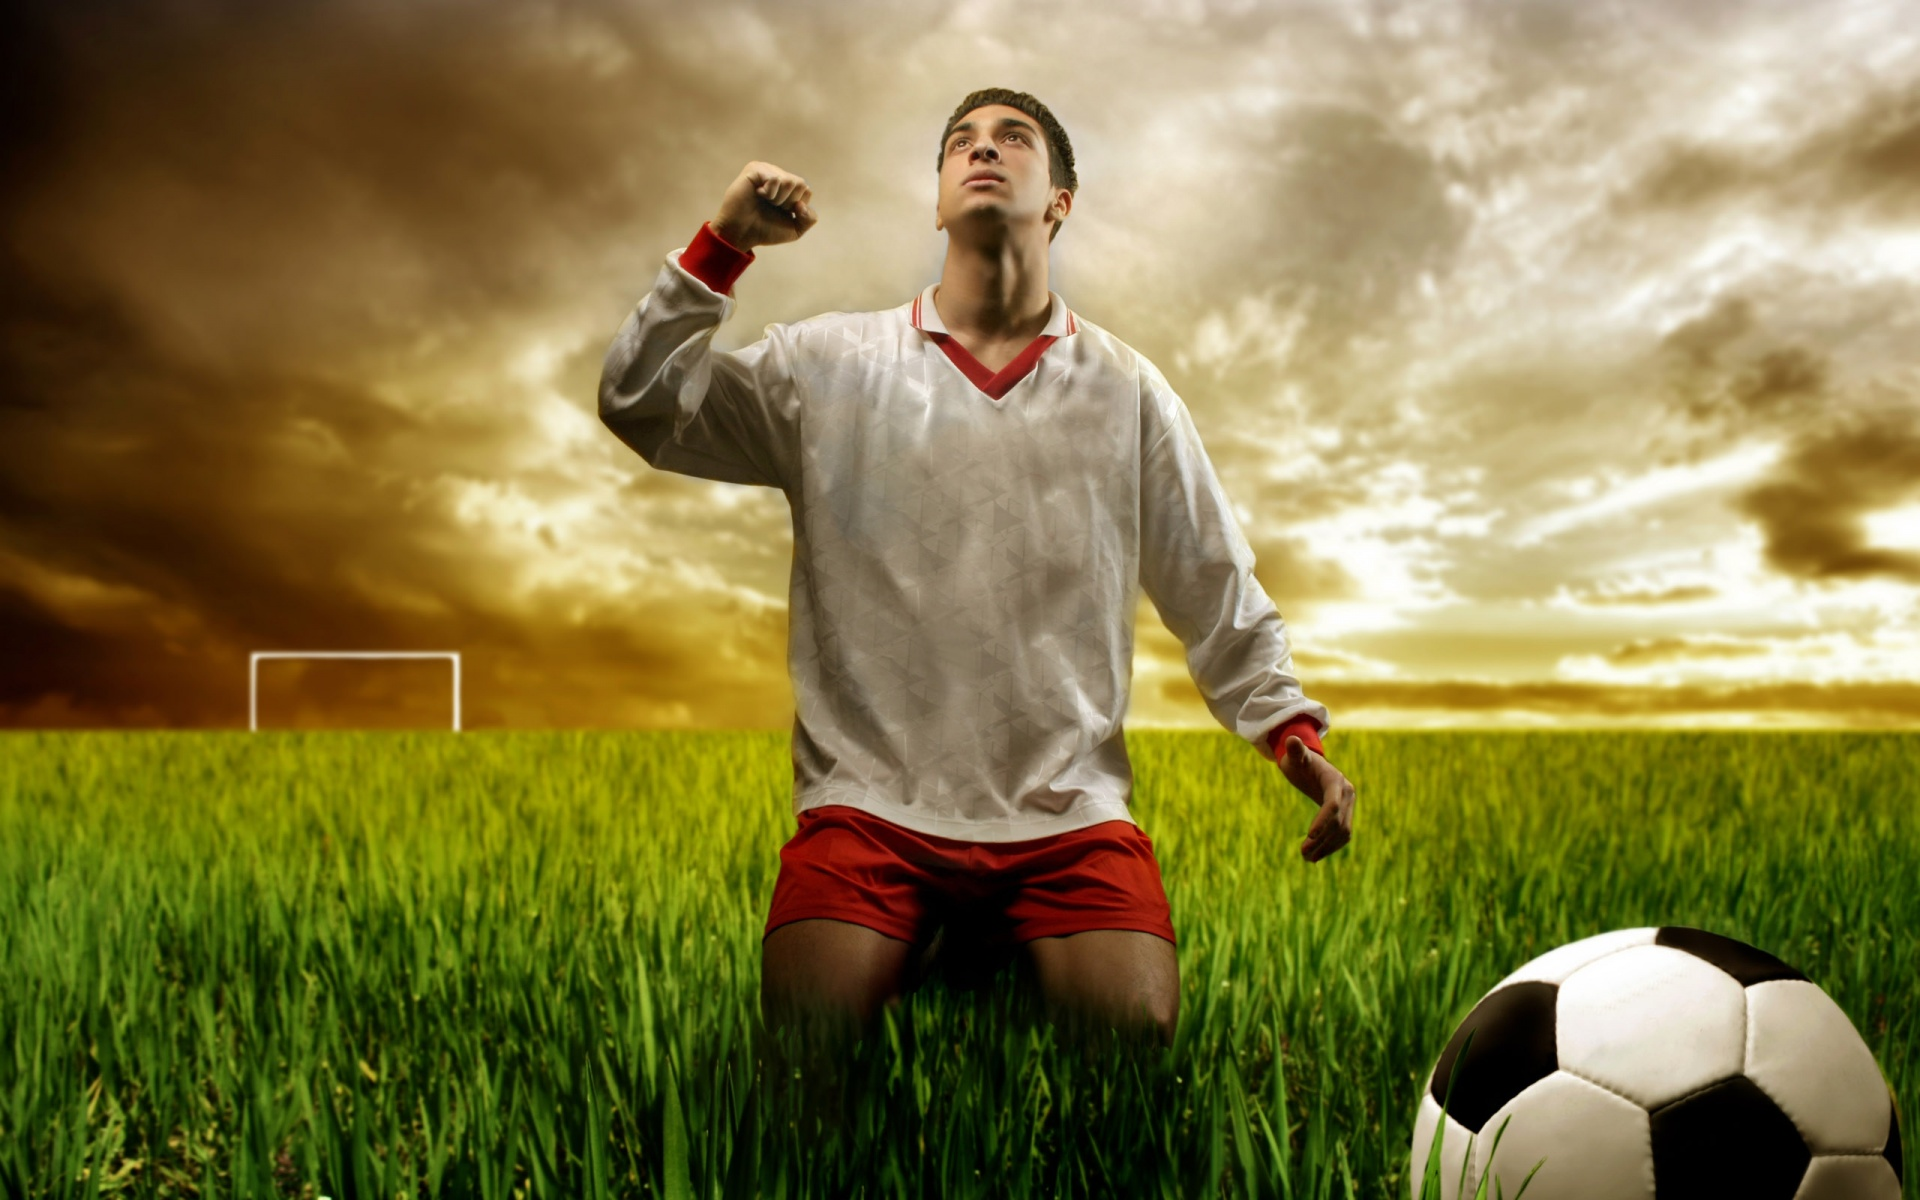 football desktop backgrounds | Free football desktop backgrounds ...